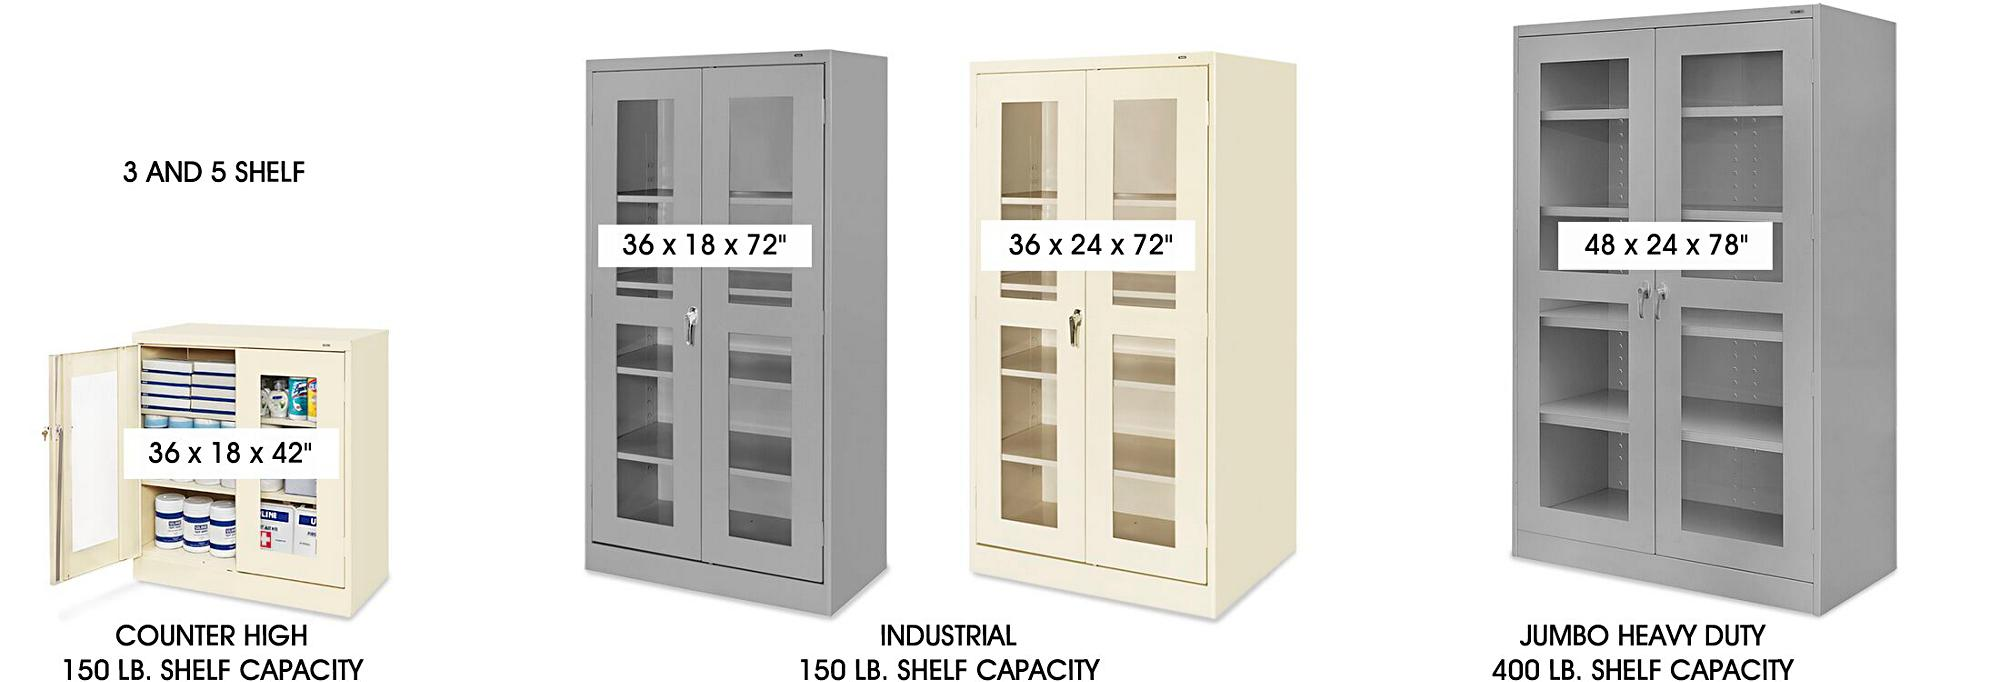 Clear-View Cabinets